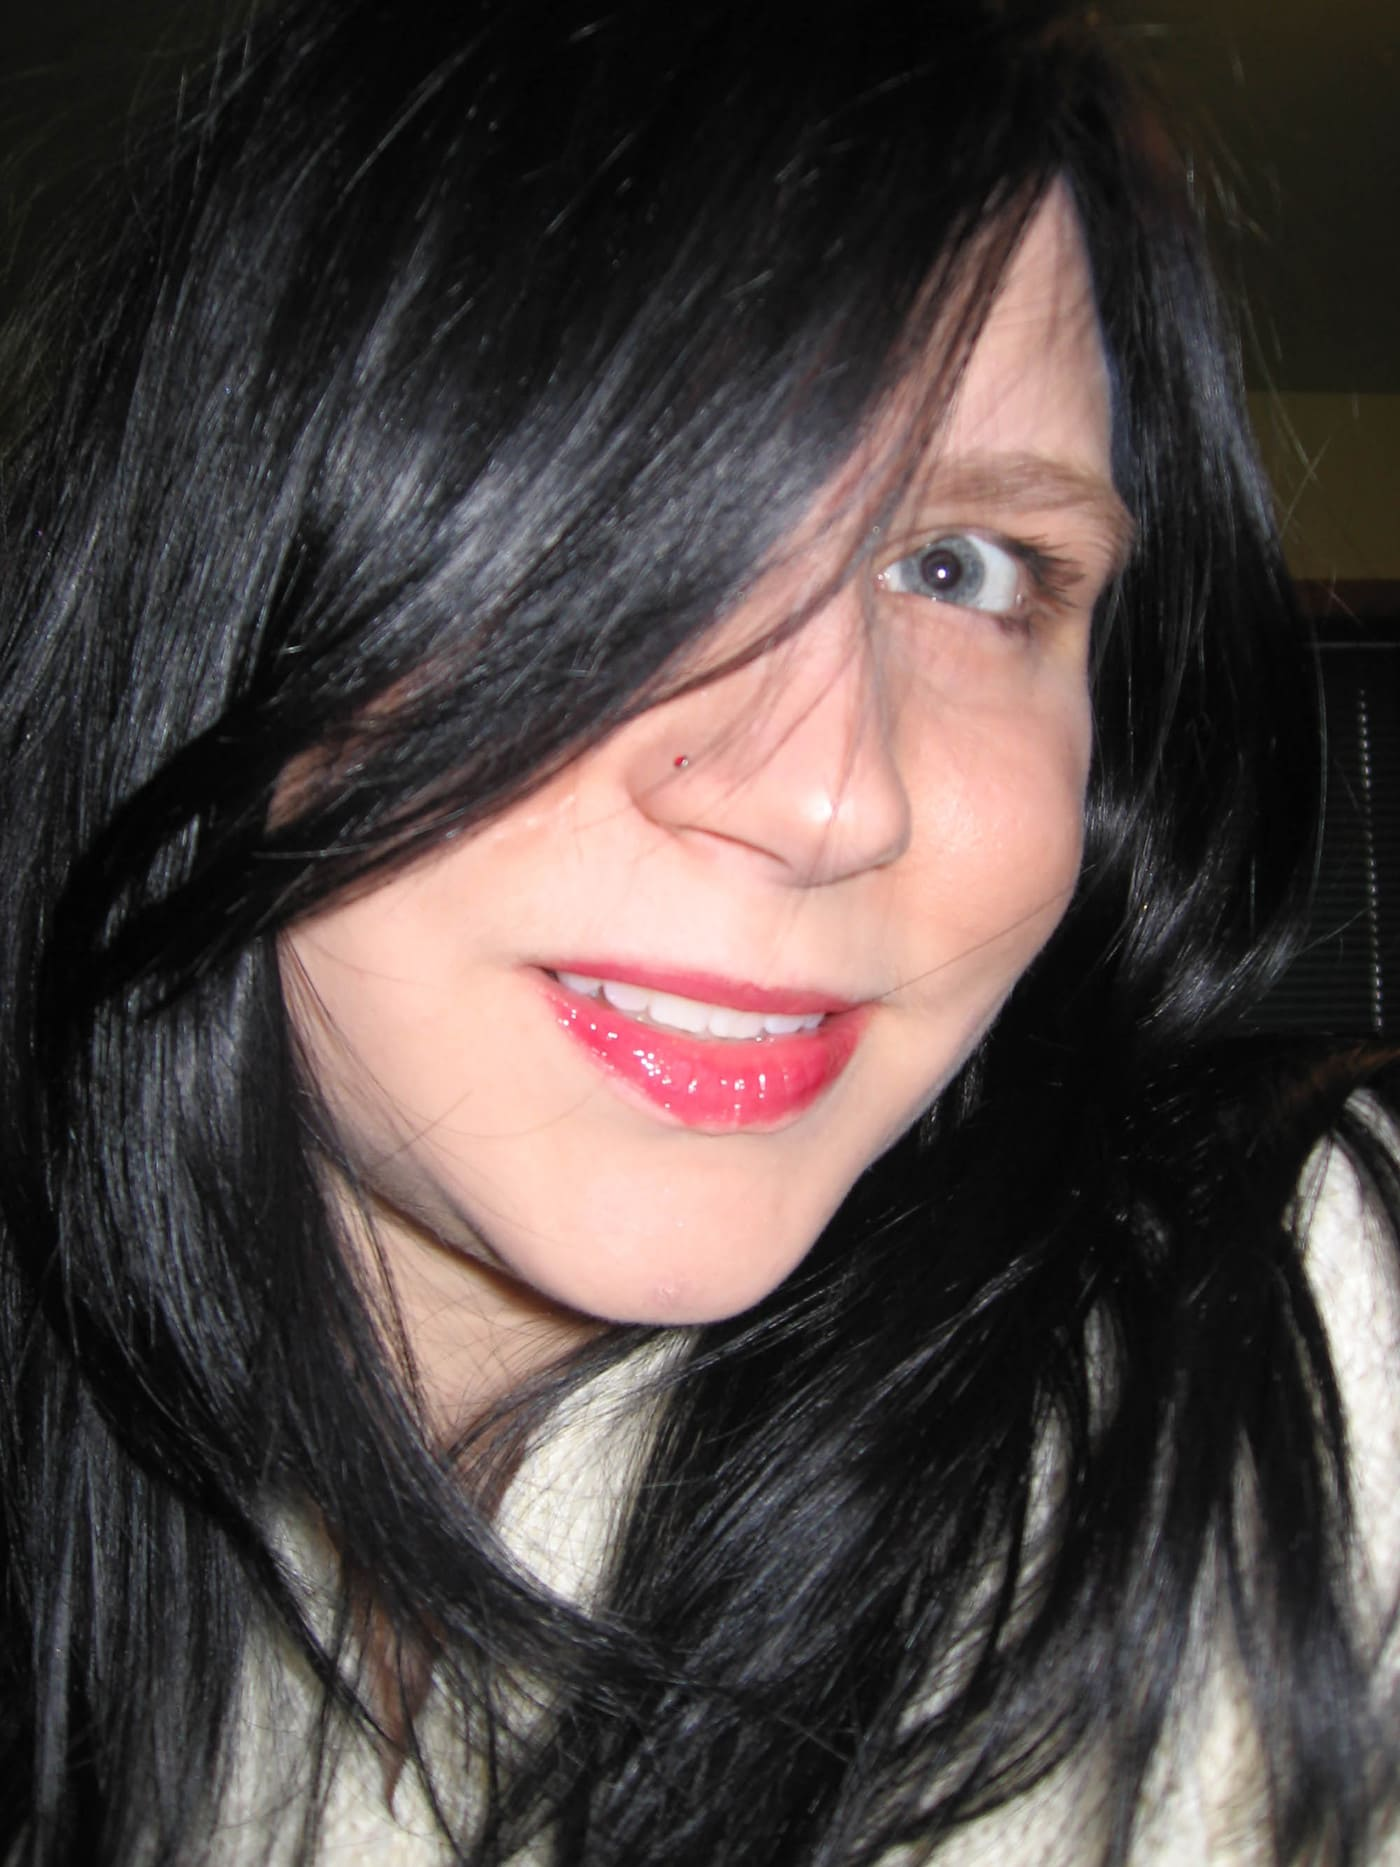 dying my hair black -0 my new hair color inspired by Snow White